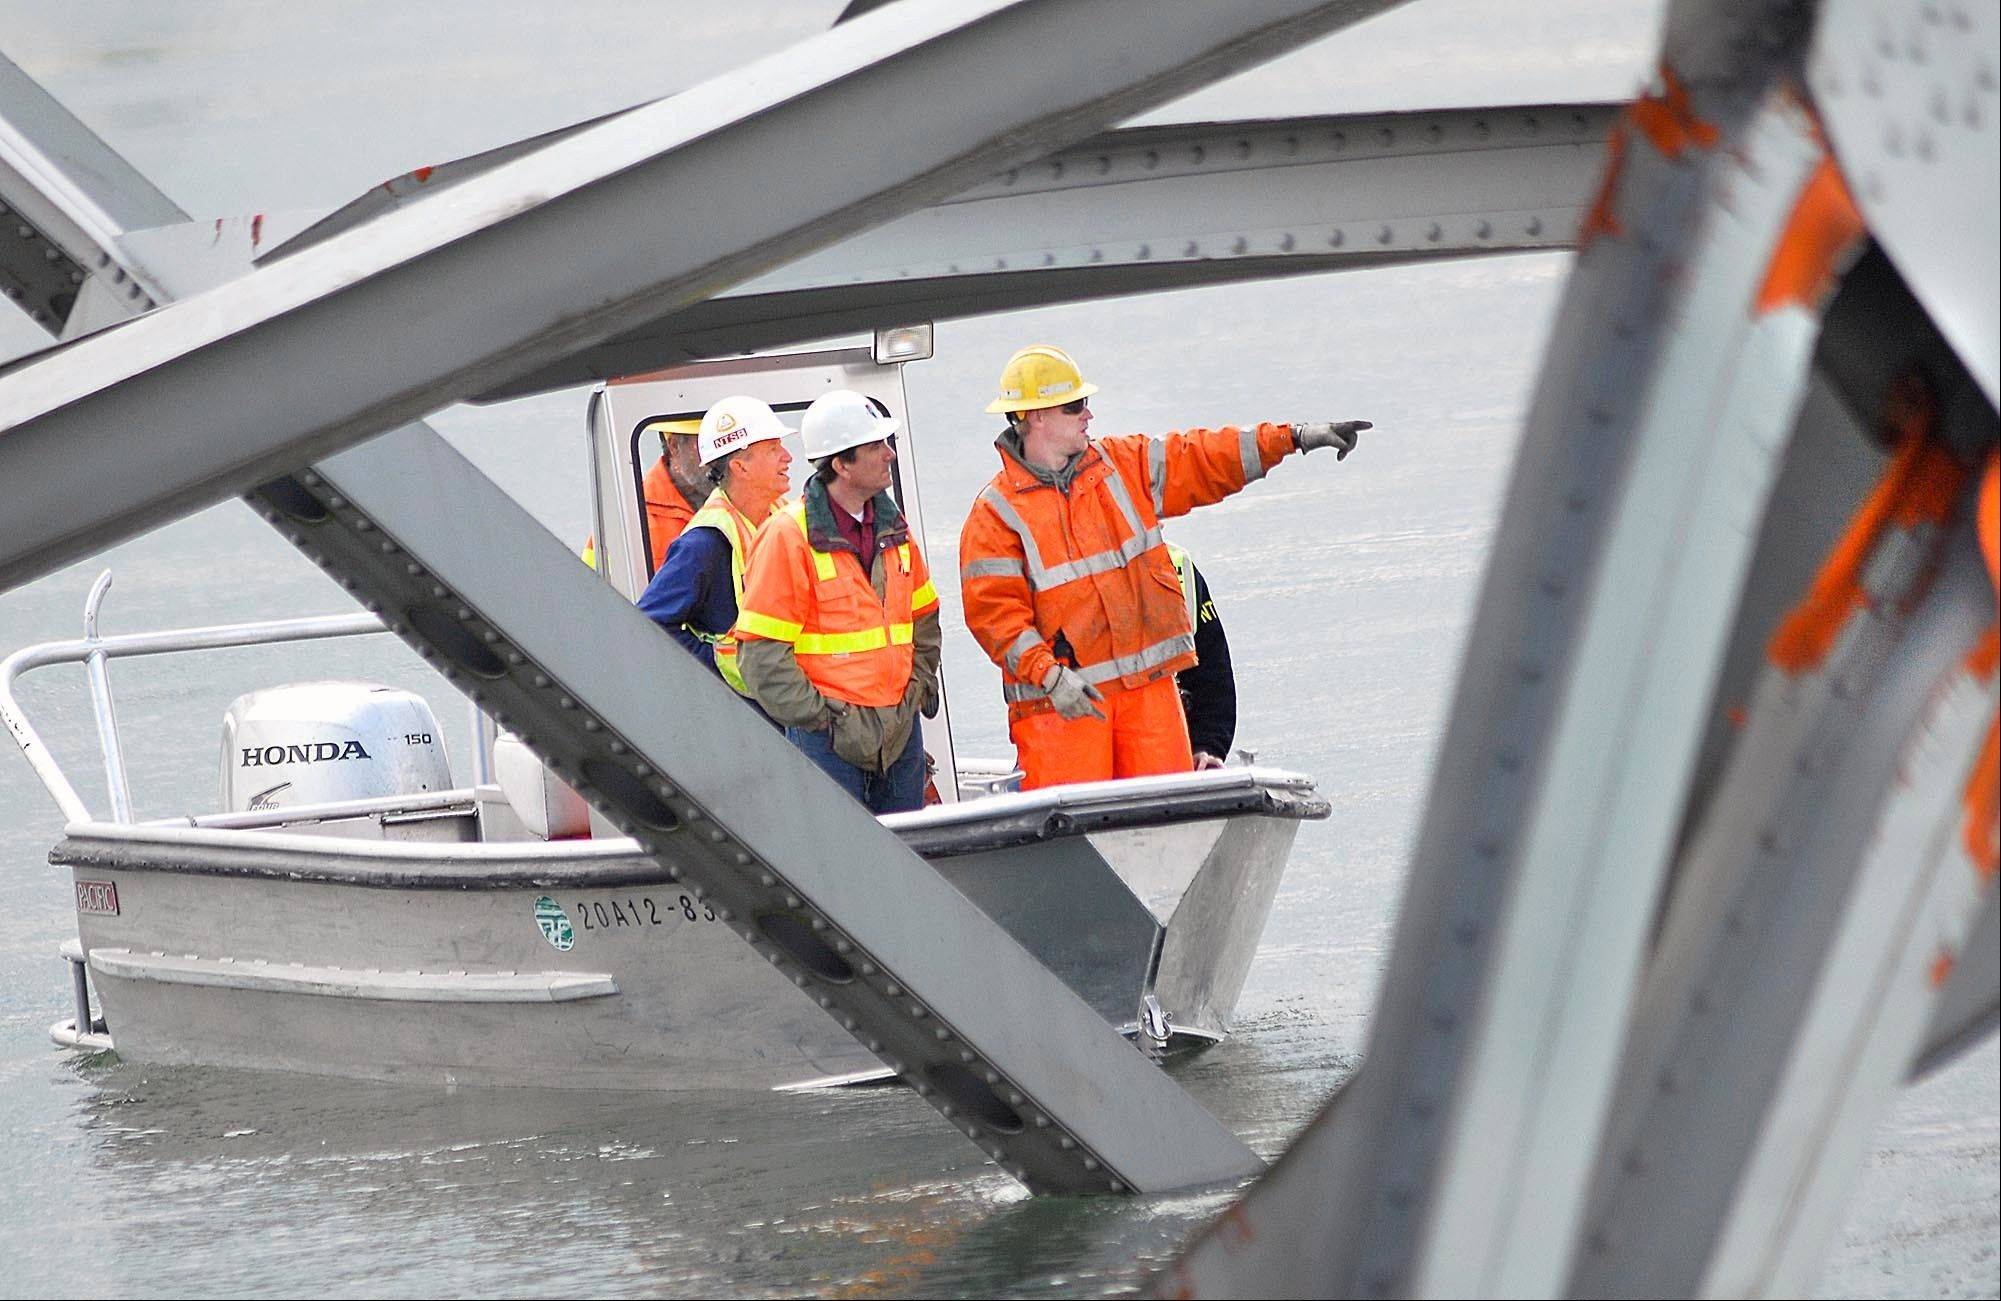 A crew from the National Transportation Safety Board inspects a section of the Skagit River Bridge, Saturday, May 25, 2013 in Mount Vernon, Wash. The chairman of the National Transportation Safety Board said Saturday the bridge collapse in Washington state is a wake-up call for the nation.